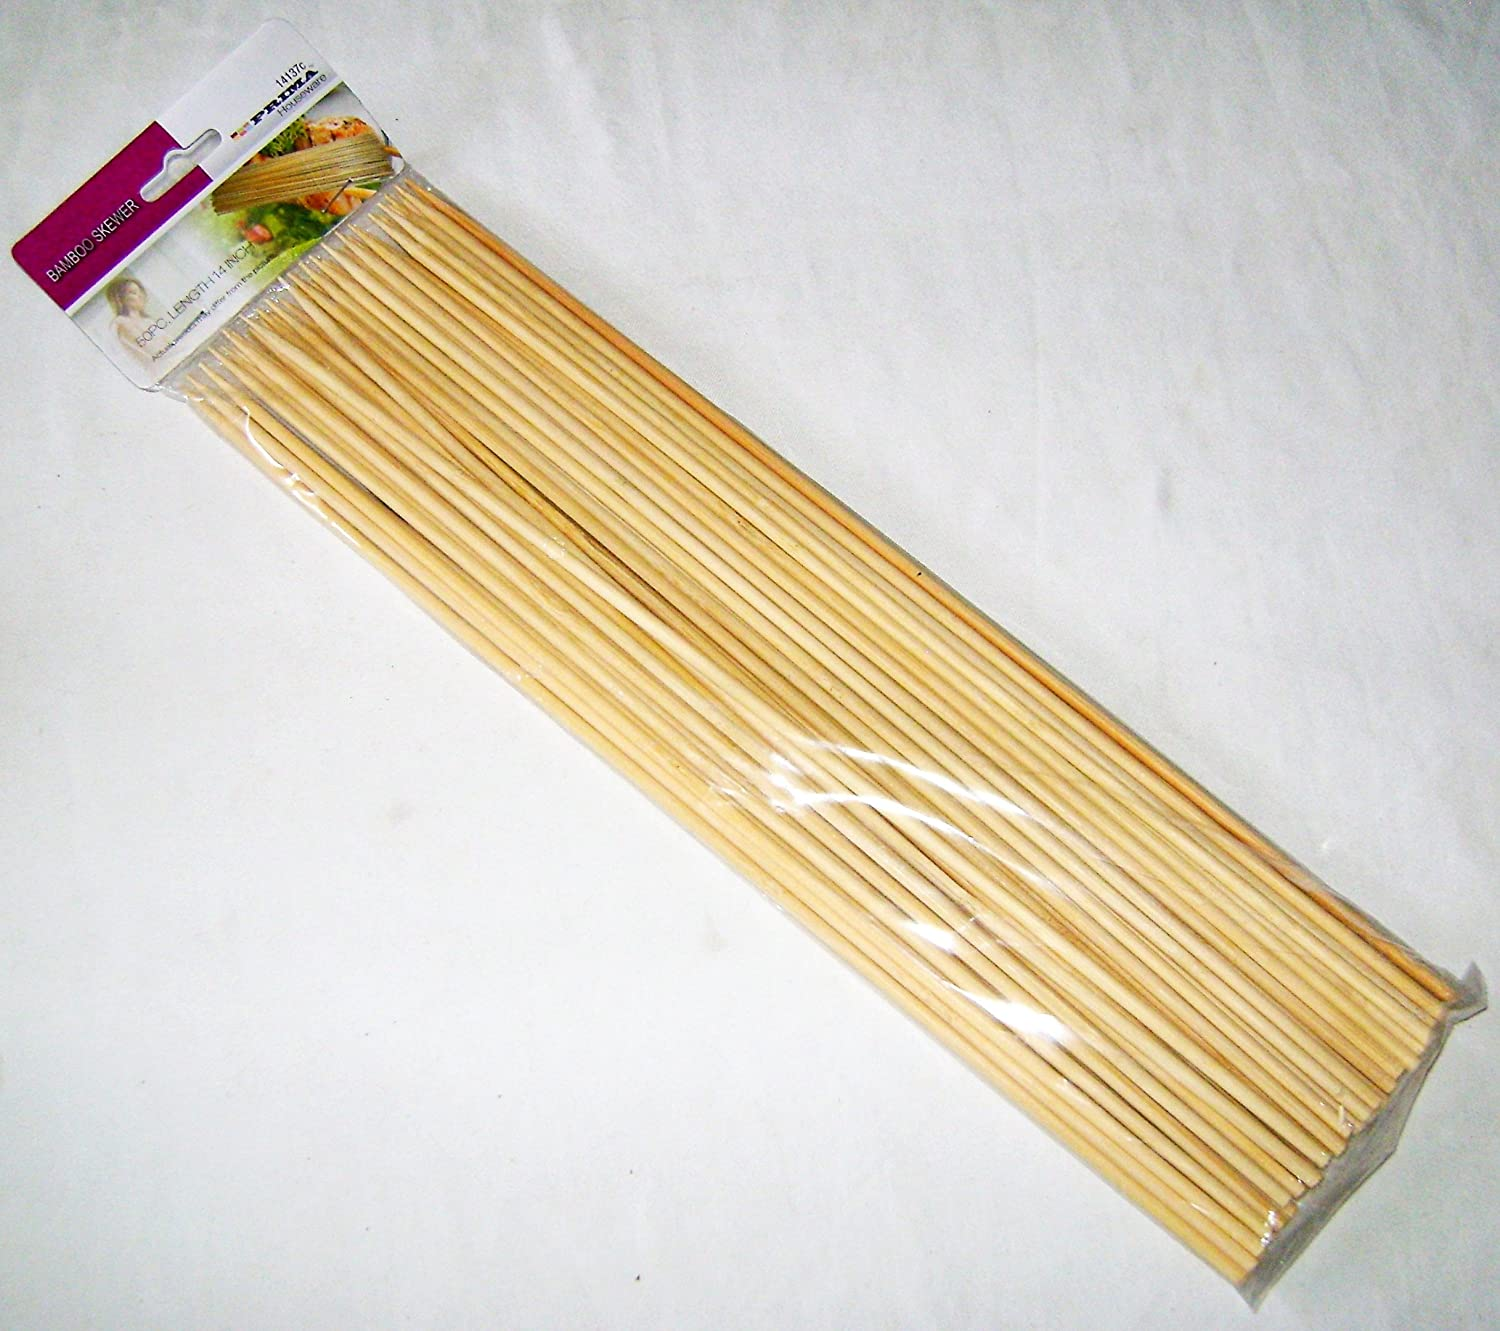 12-Inch Bamboo Skewers Sticks 150pcs For BBQ Kebab Fruit BBQ Wooden Sticks UK